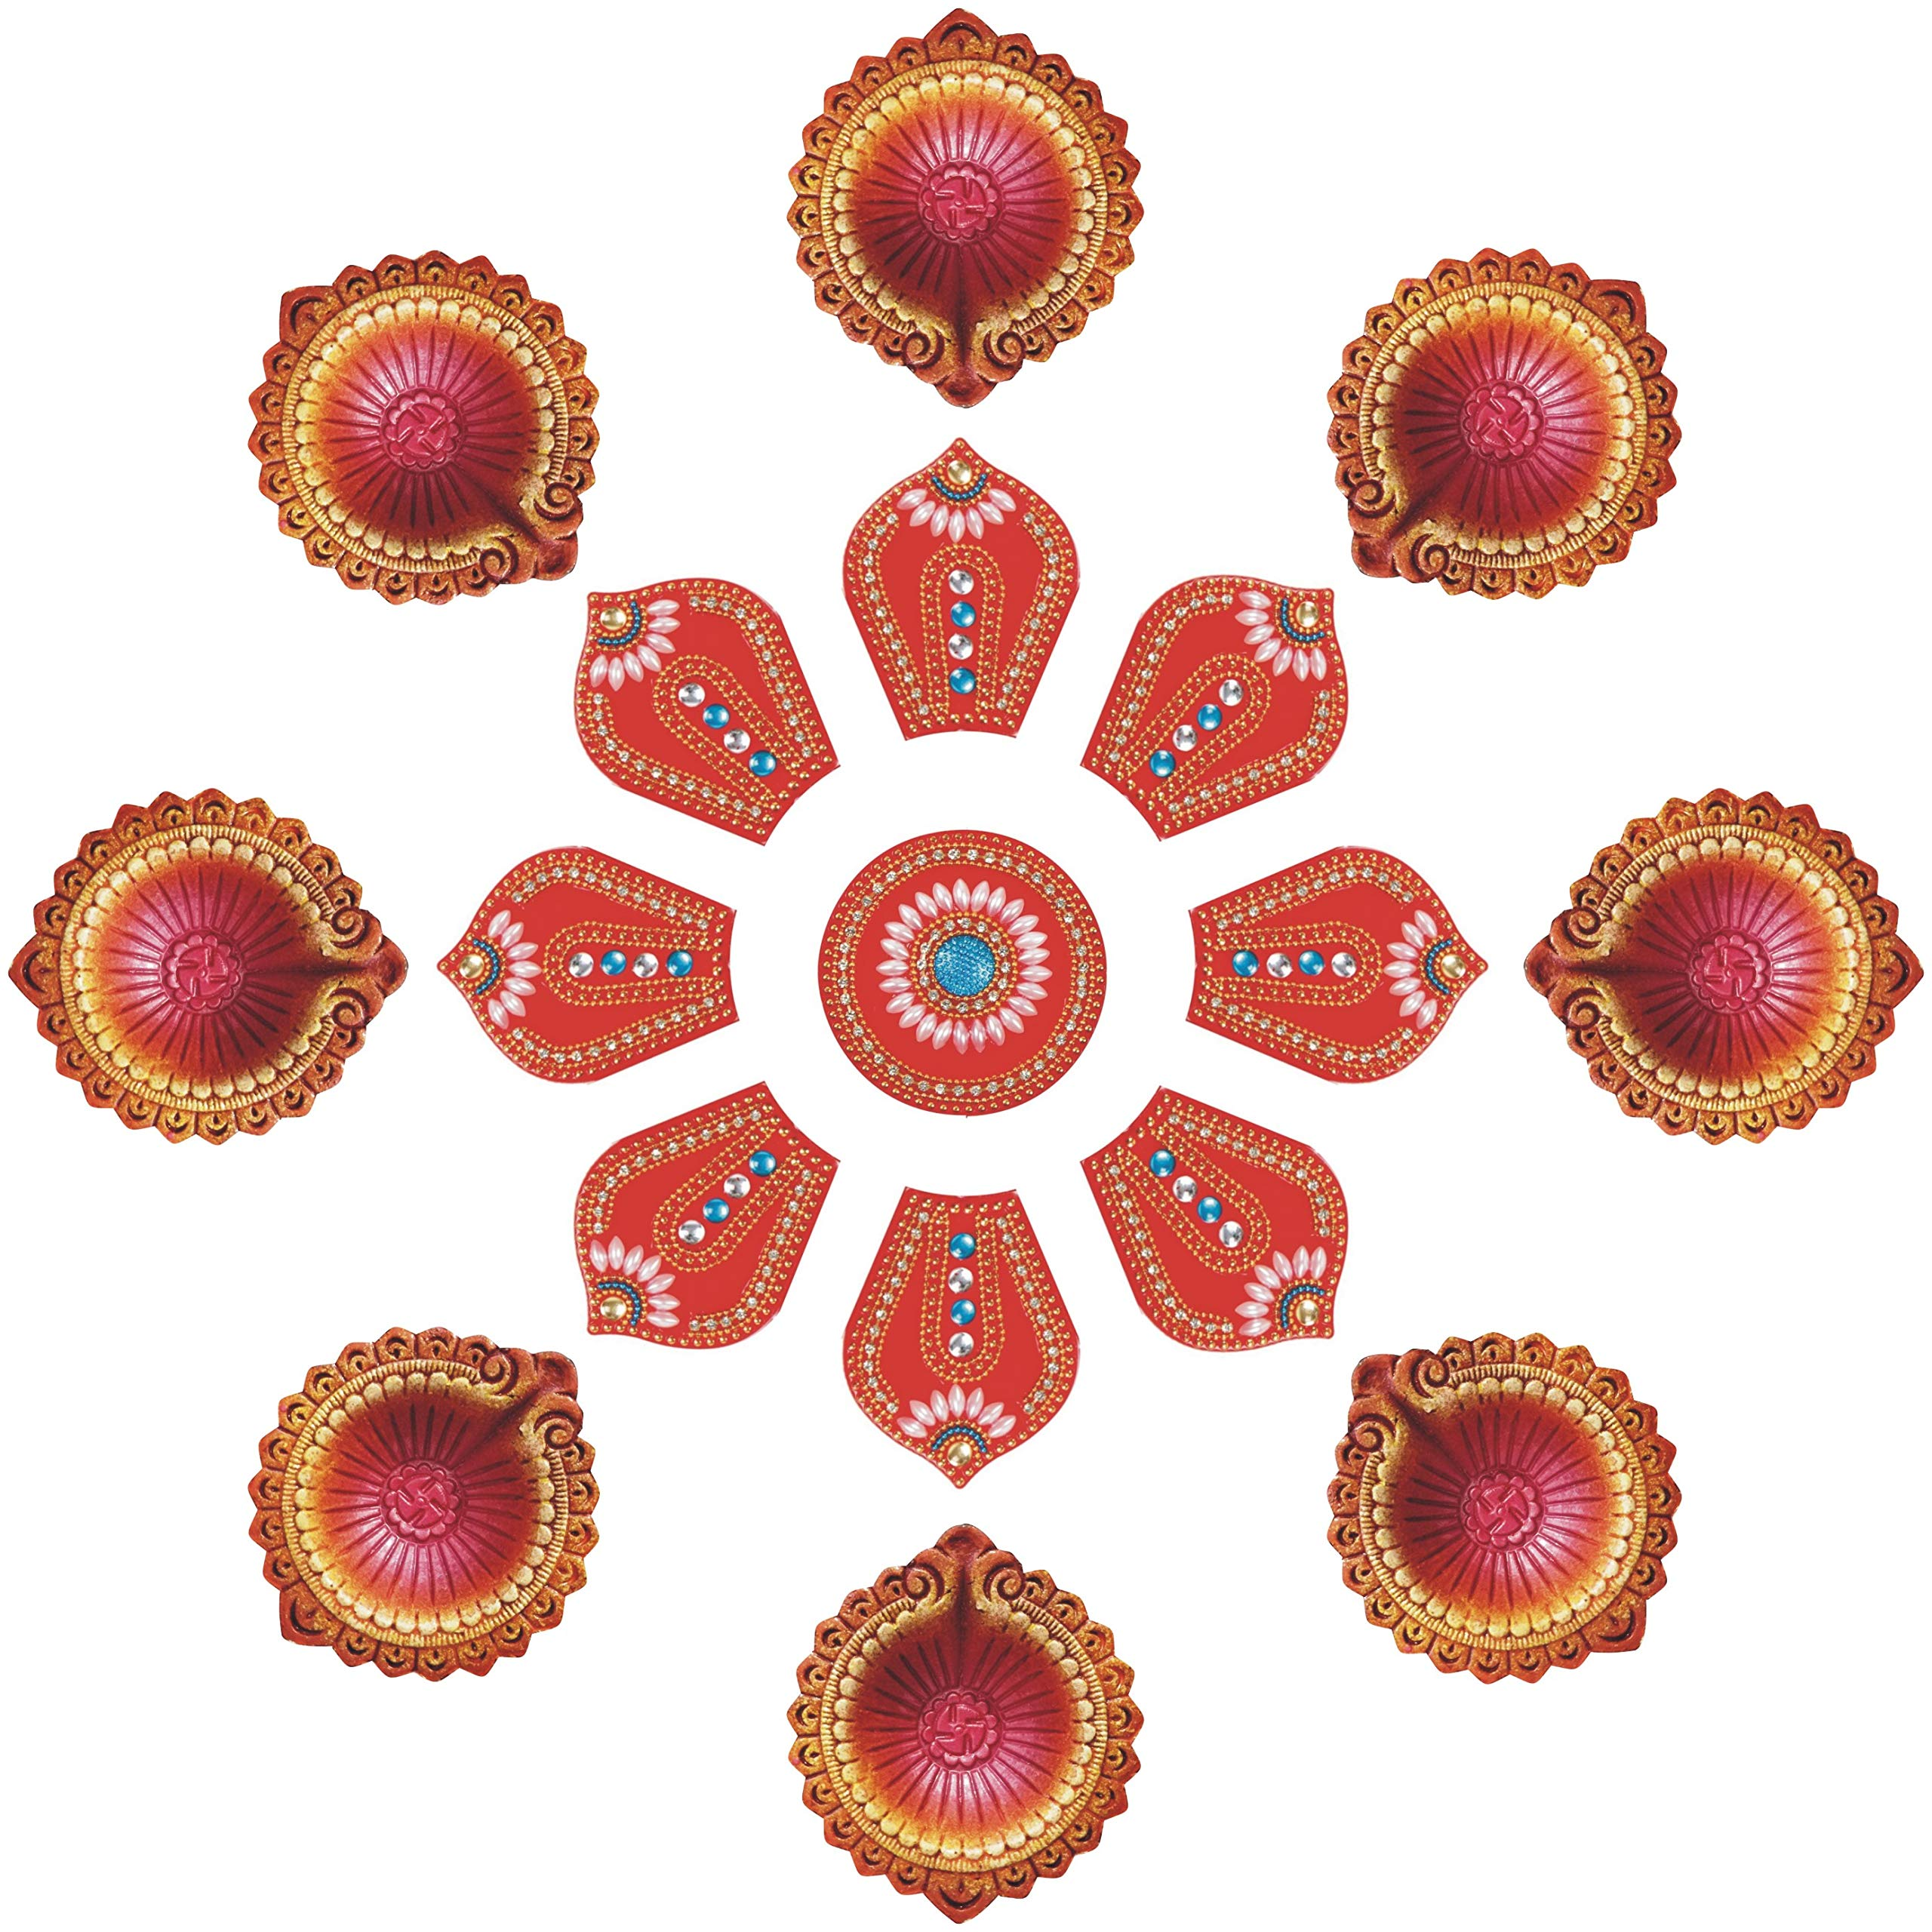 Ramya Exclusive Combo of Handcrafted Vibrant Rangoli with a Set of 10 Handpainted Clay Diyas/Oil Lamps - Ideal for Diwali/Christmas / Festival Decoration and Gifting (7282D)